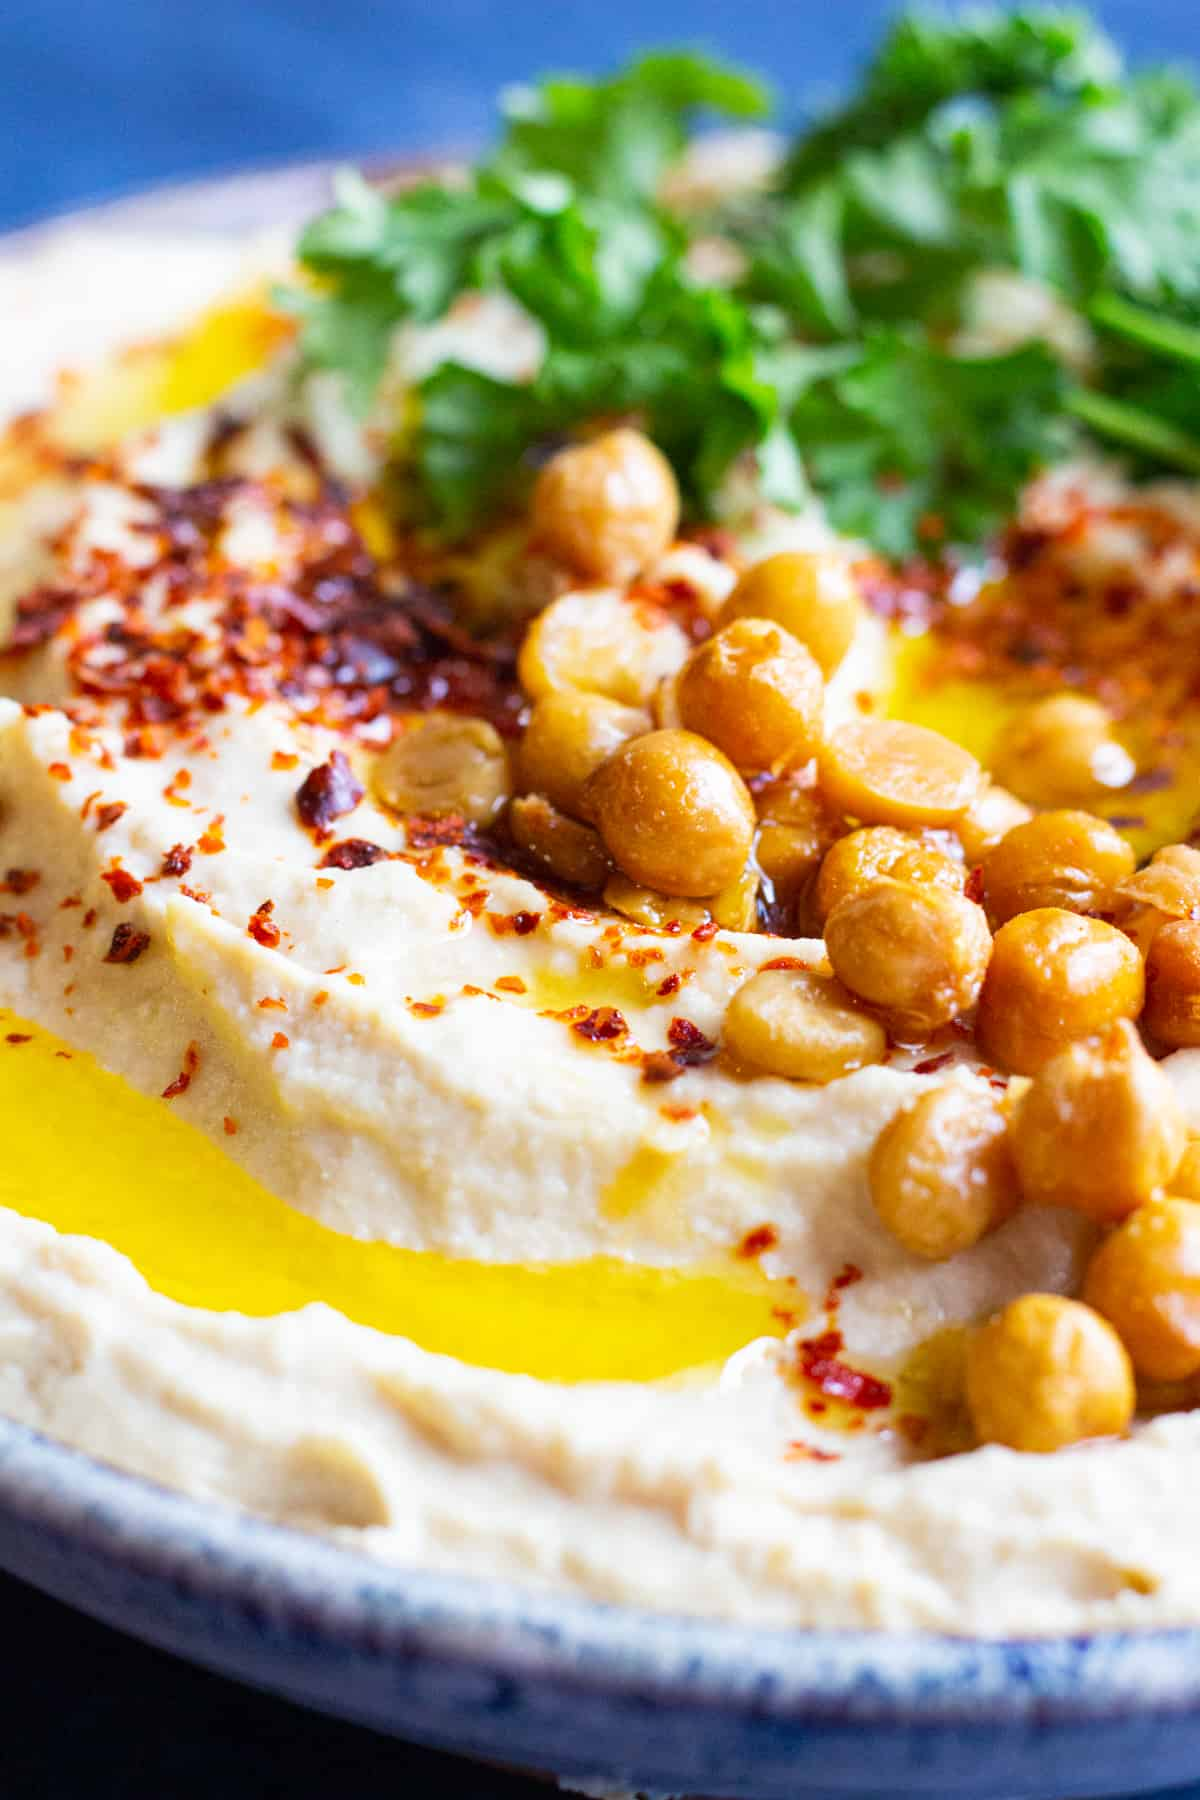 Drizzle with extra virgin olive oil and top with pepper, sumac and crispy chickpeas